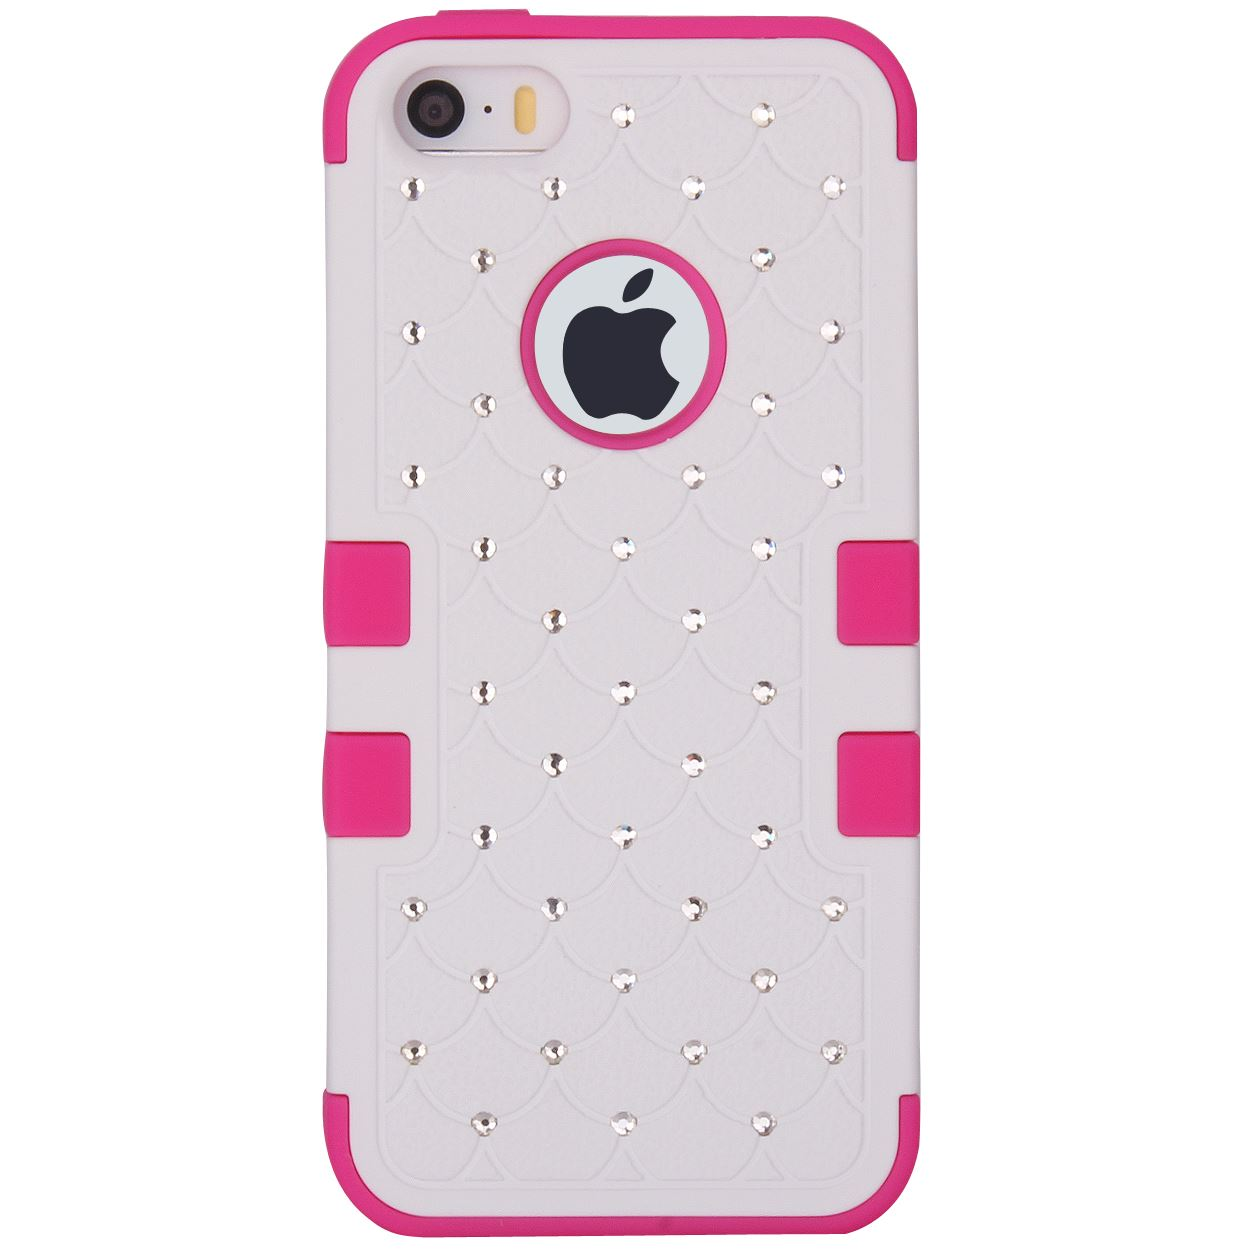 3 Layers Bling Crystals Hybrid Hard + Soft Case Cover Skin for iPhone 5 5s